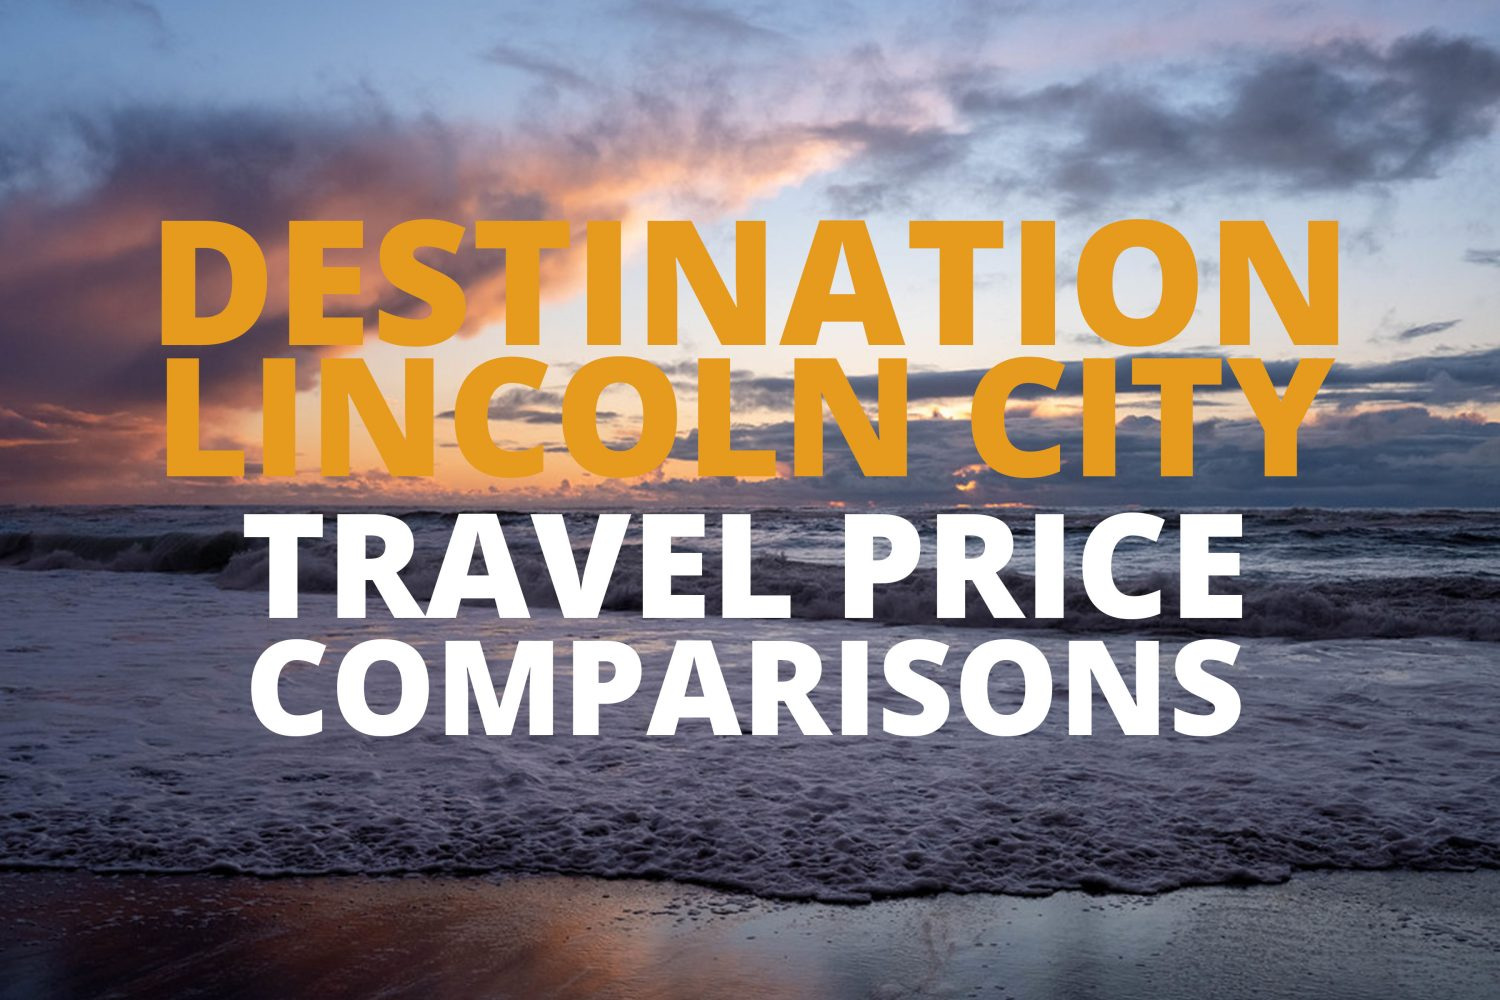 Lincoln City Oregon Travel Prices